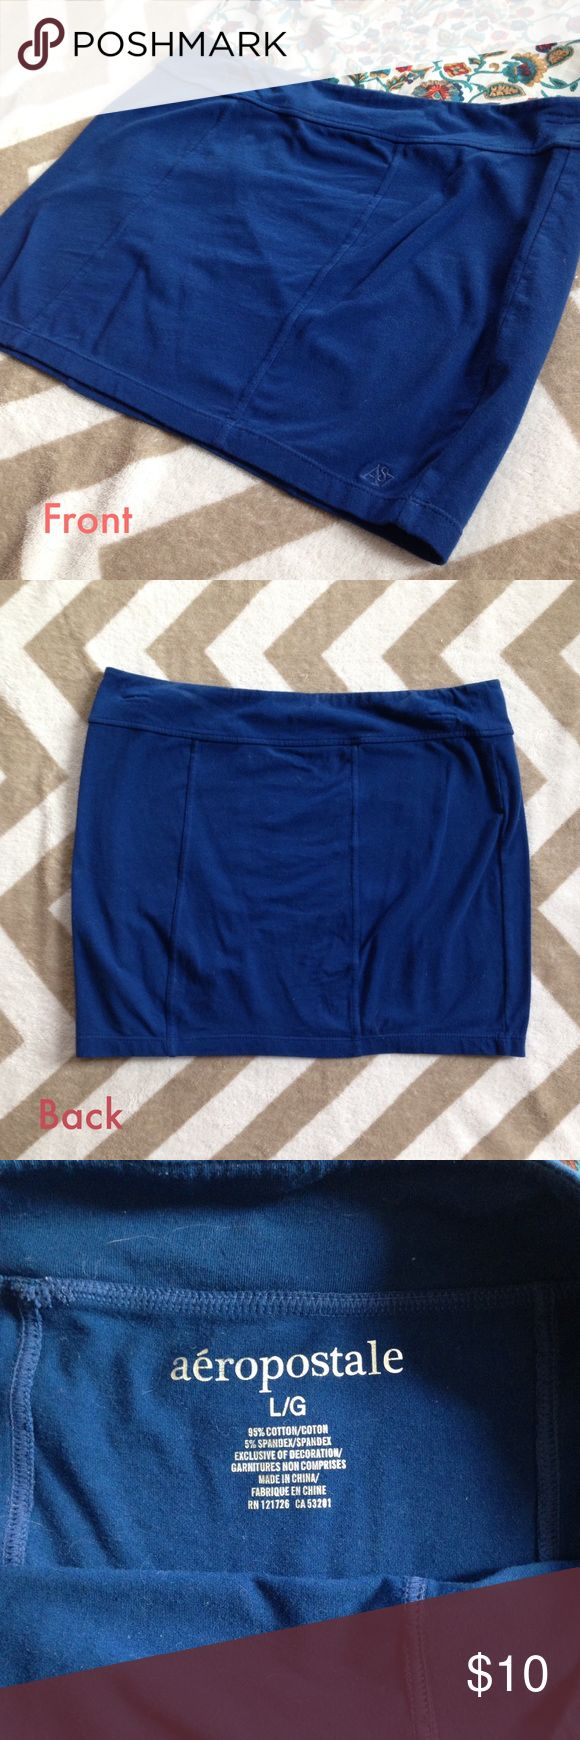 "Blue Bodycon Stretch Miniskirt Super stretchy, tight bodycon mini skirt from Aero! 95% cotton, 5% spandex. Seam detailing. 32"" waist band, 14"" length, 36"" hips. Worn only a few times! Aeropostale Skirts Mini"